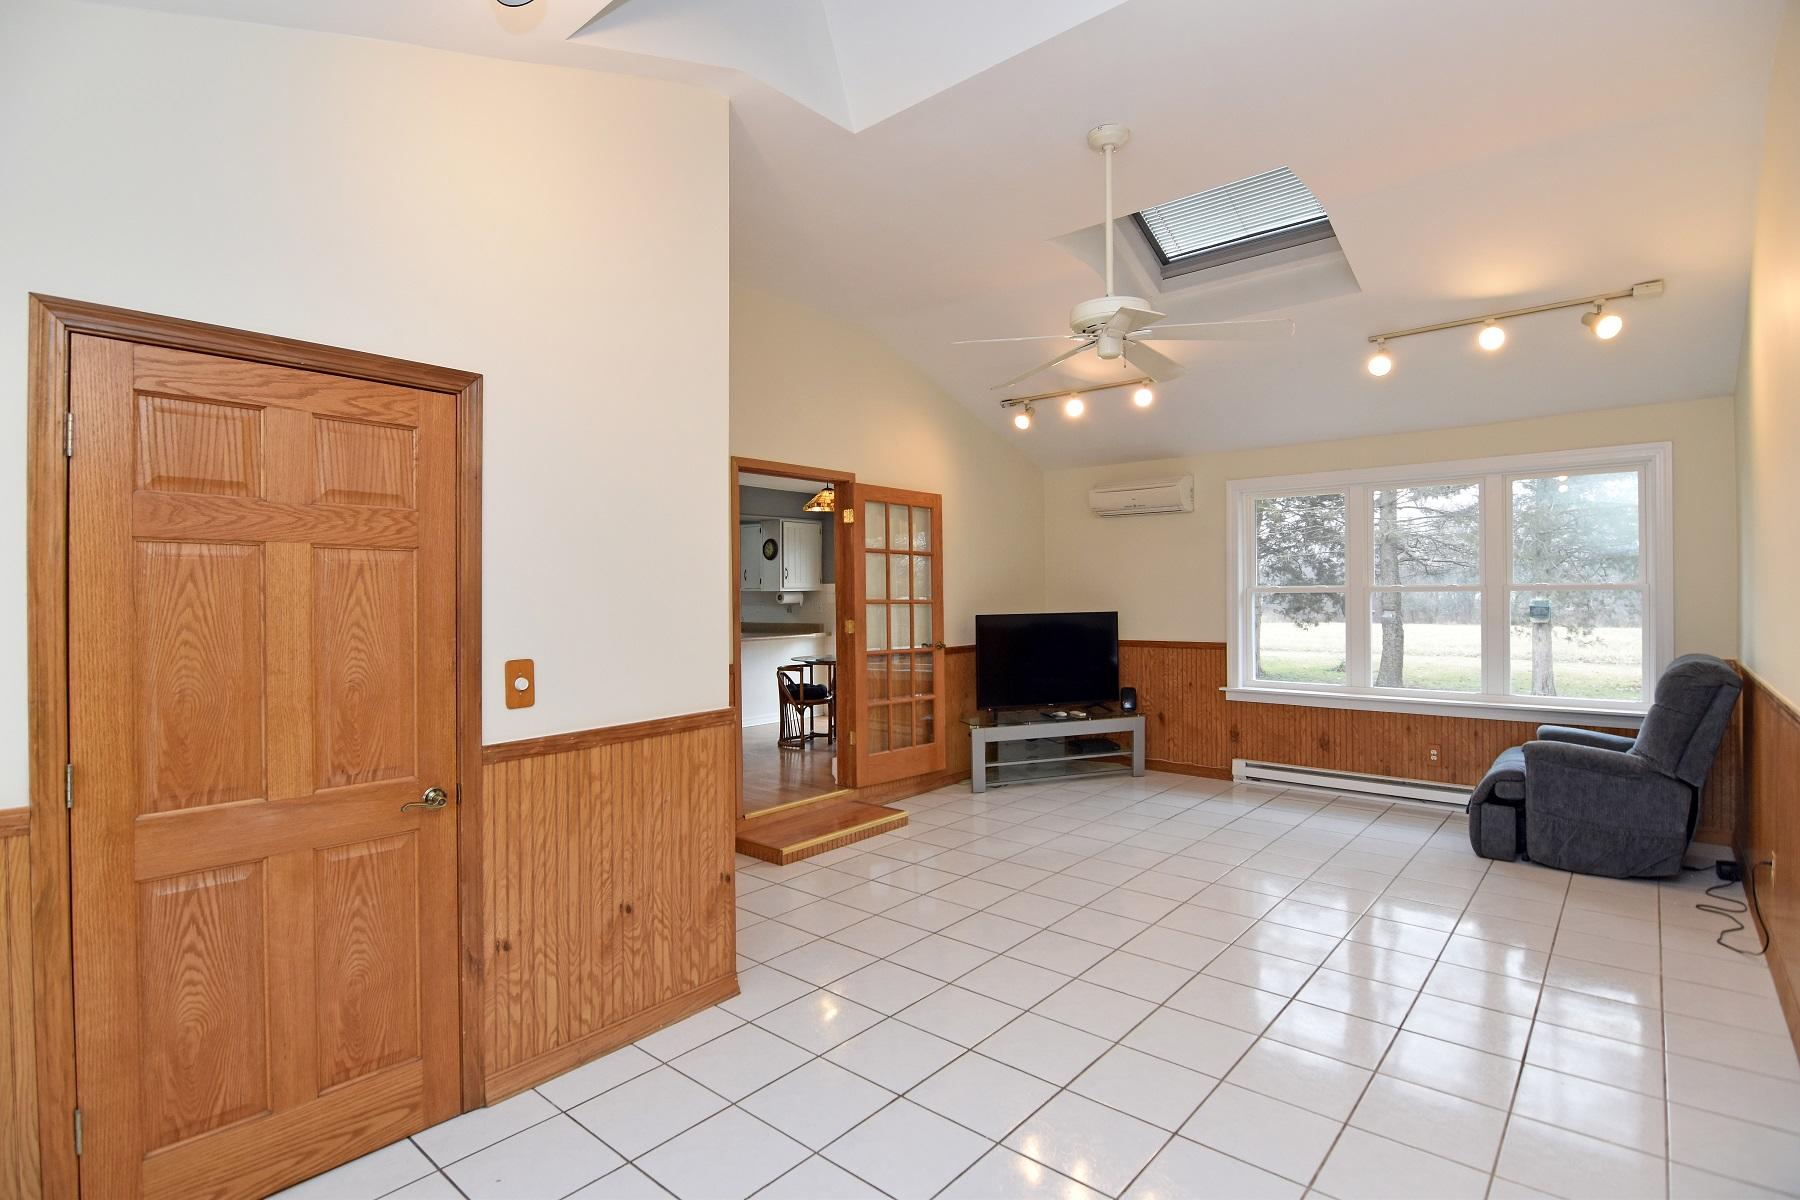 10431 256th Ave, Salem Lakes, Wisconsin 53179, 3 Bedrooms Bedrooms, 6 Rooms Rooms,2 BathroomsBathrooms,Single-family,For Sale,256th Ave,1722161